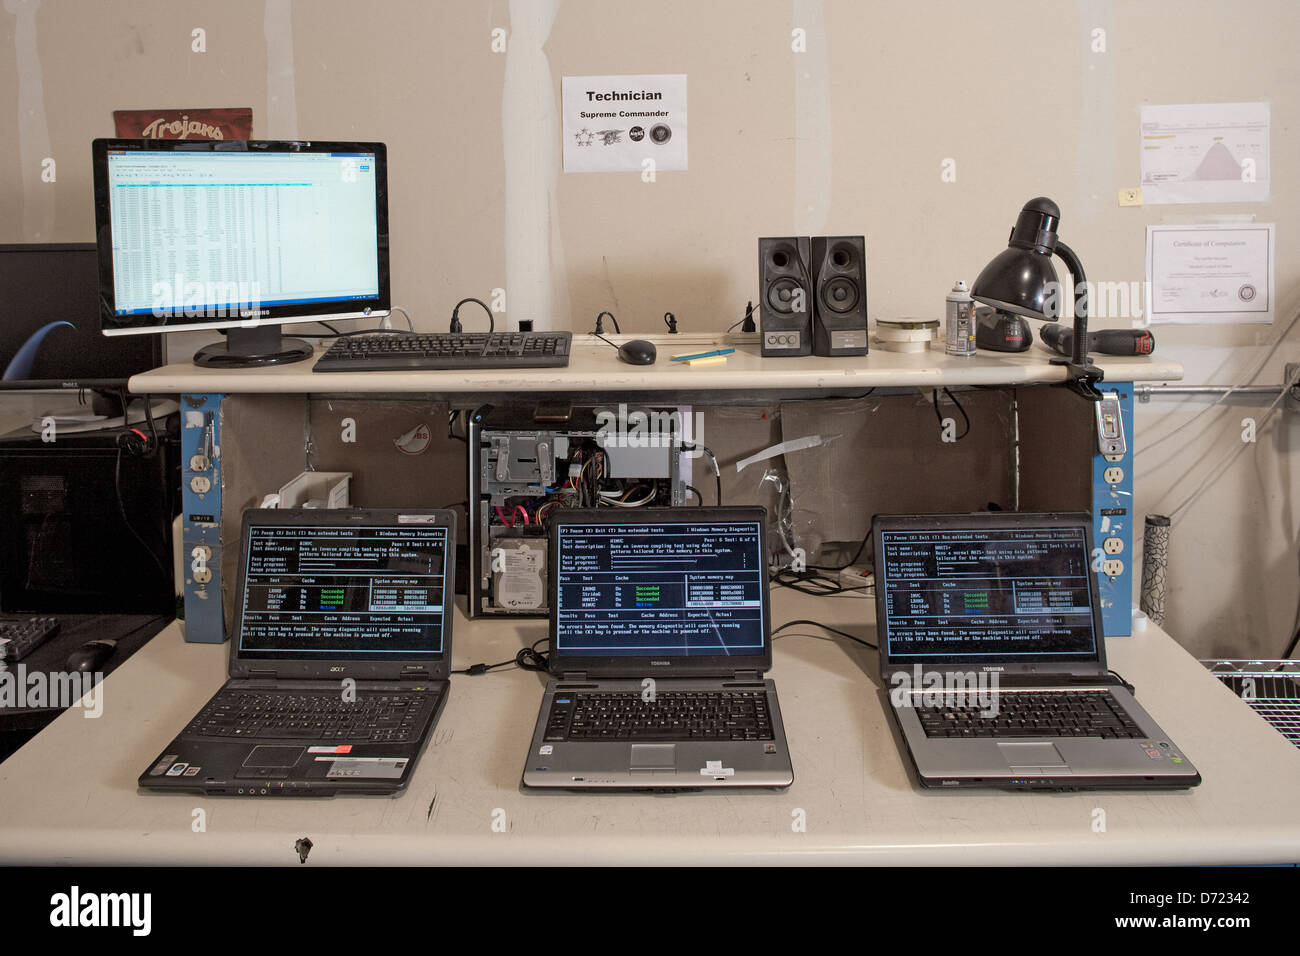 Testing recycled laptops to refurbish for resale. - Stock Image